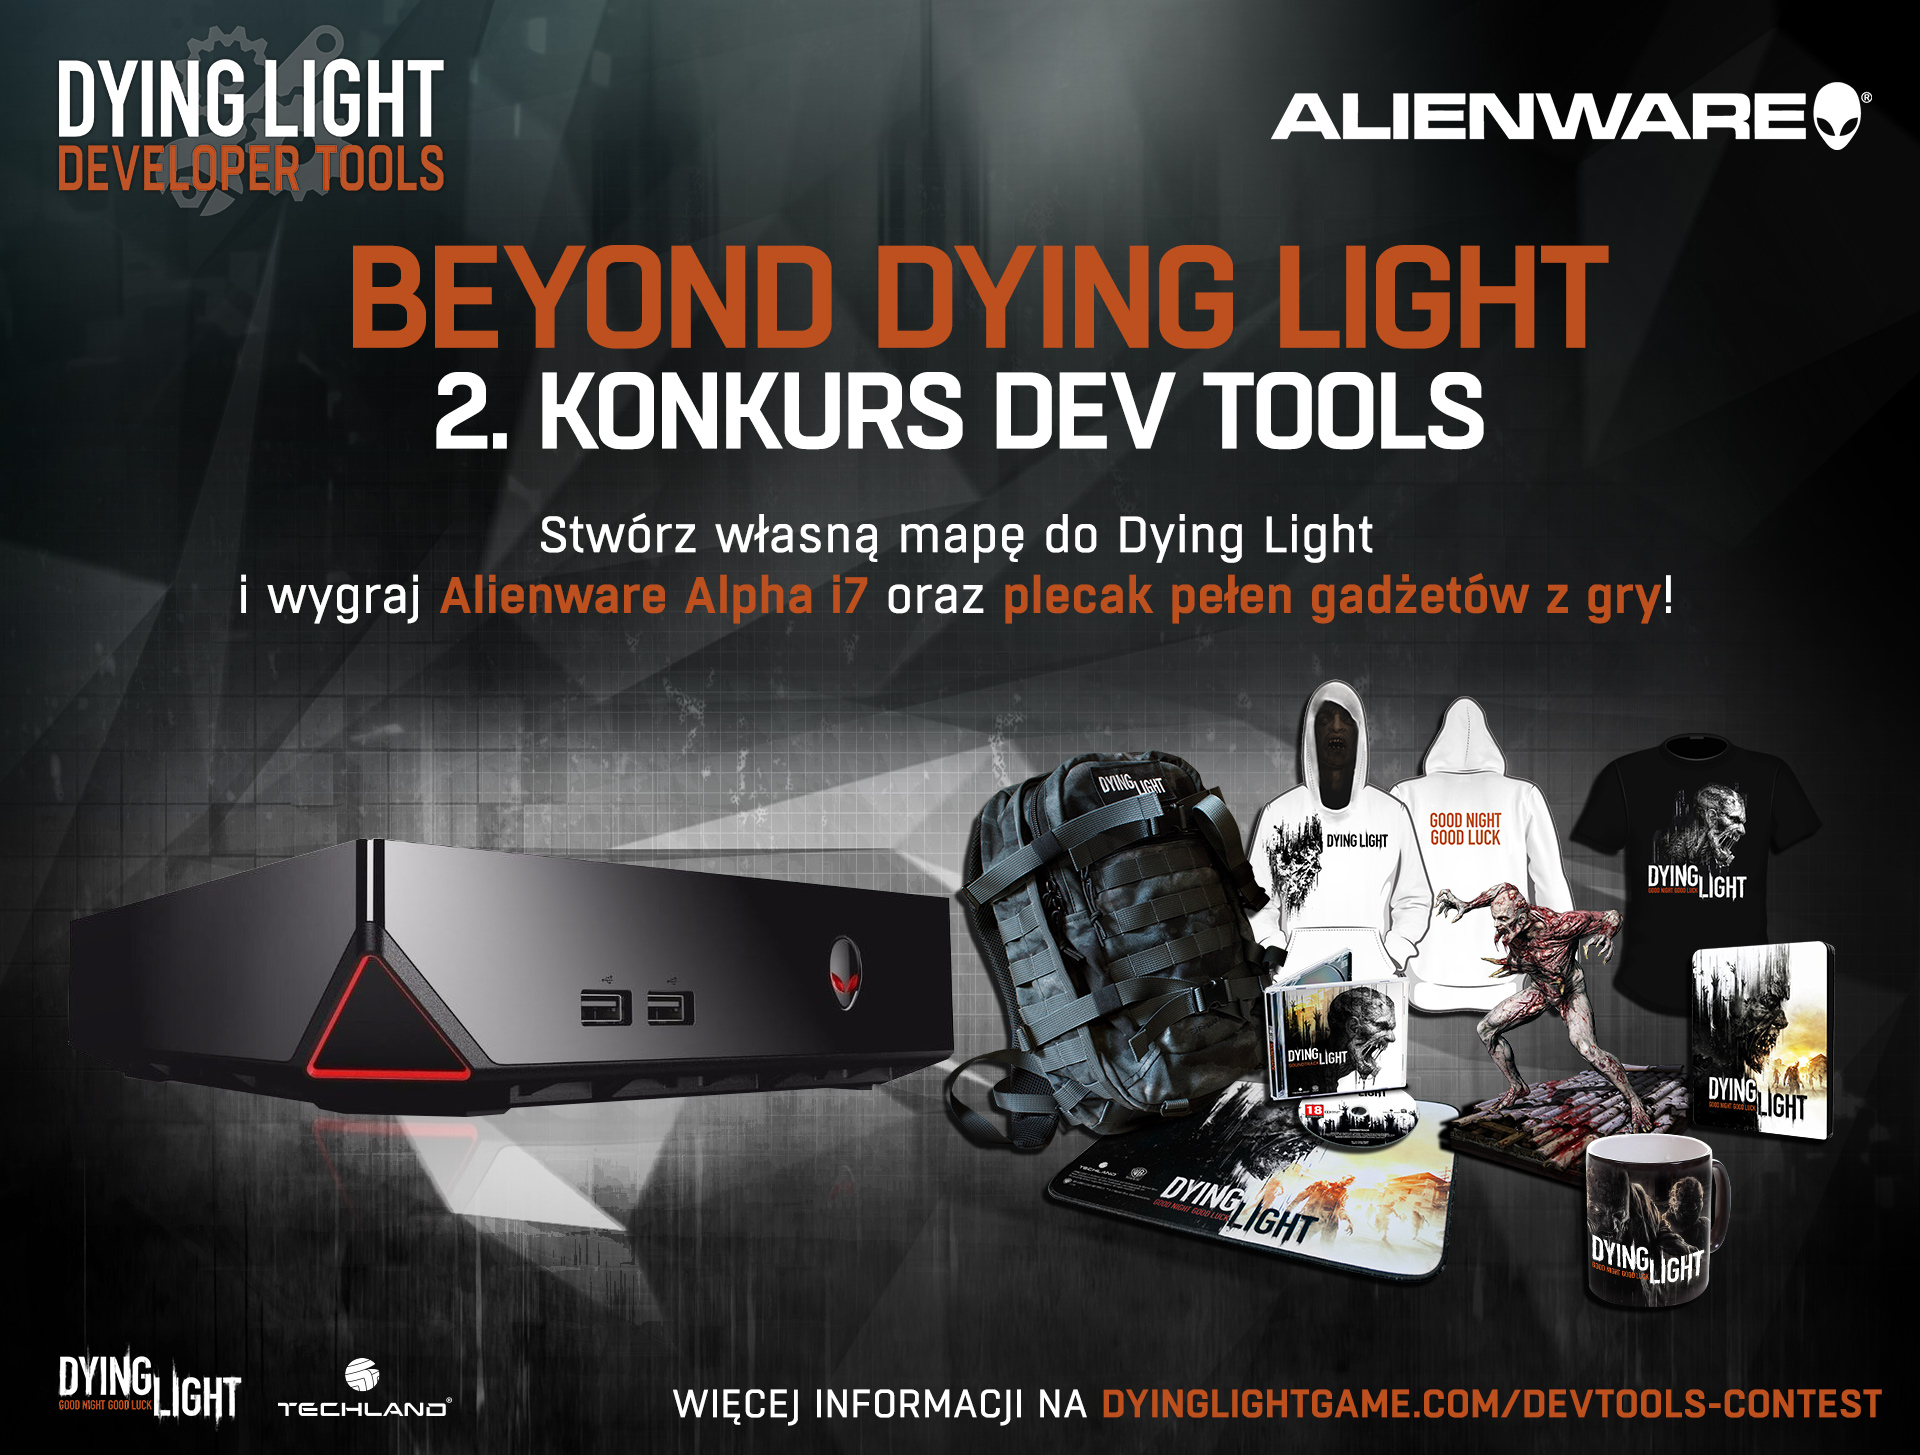 Dying Light Dev Tools - Beyond Dying Light Pl